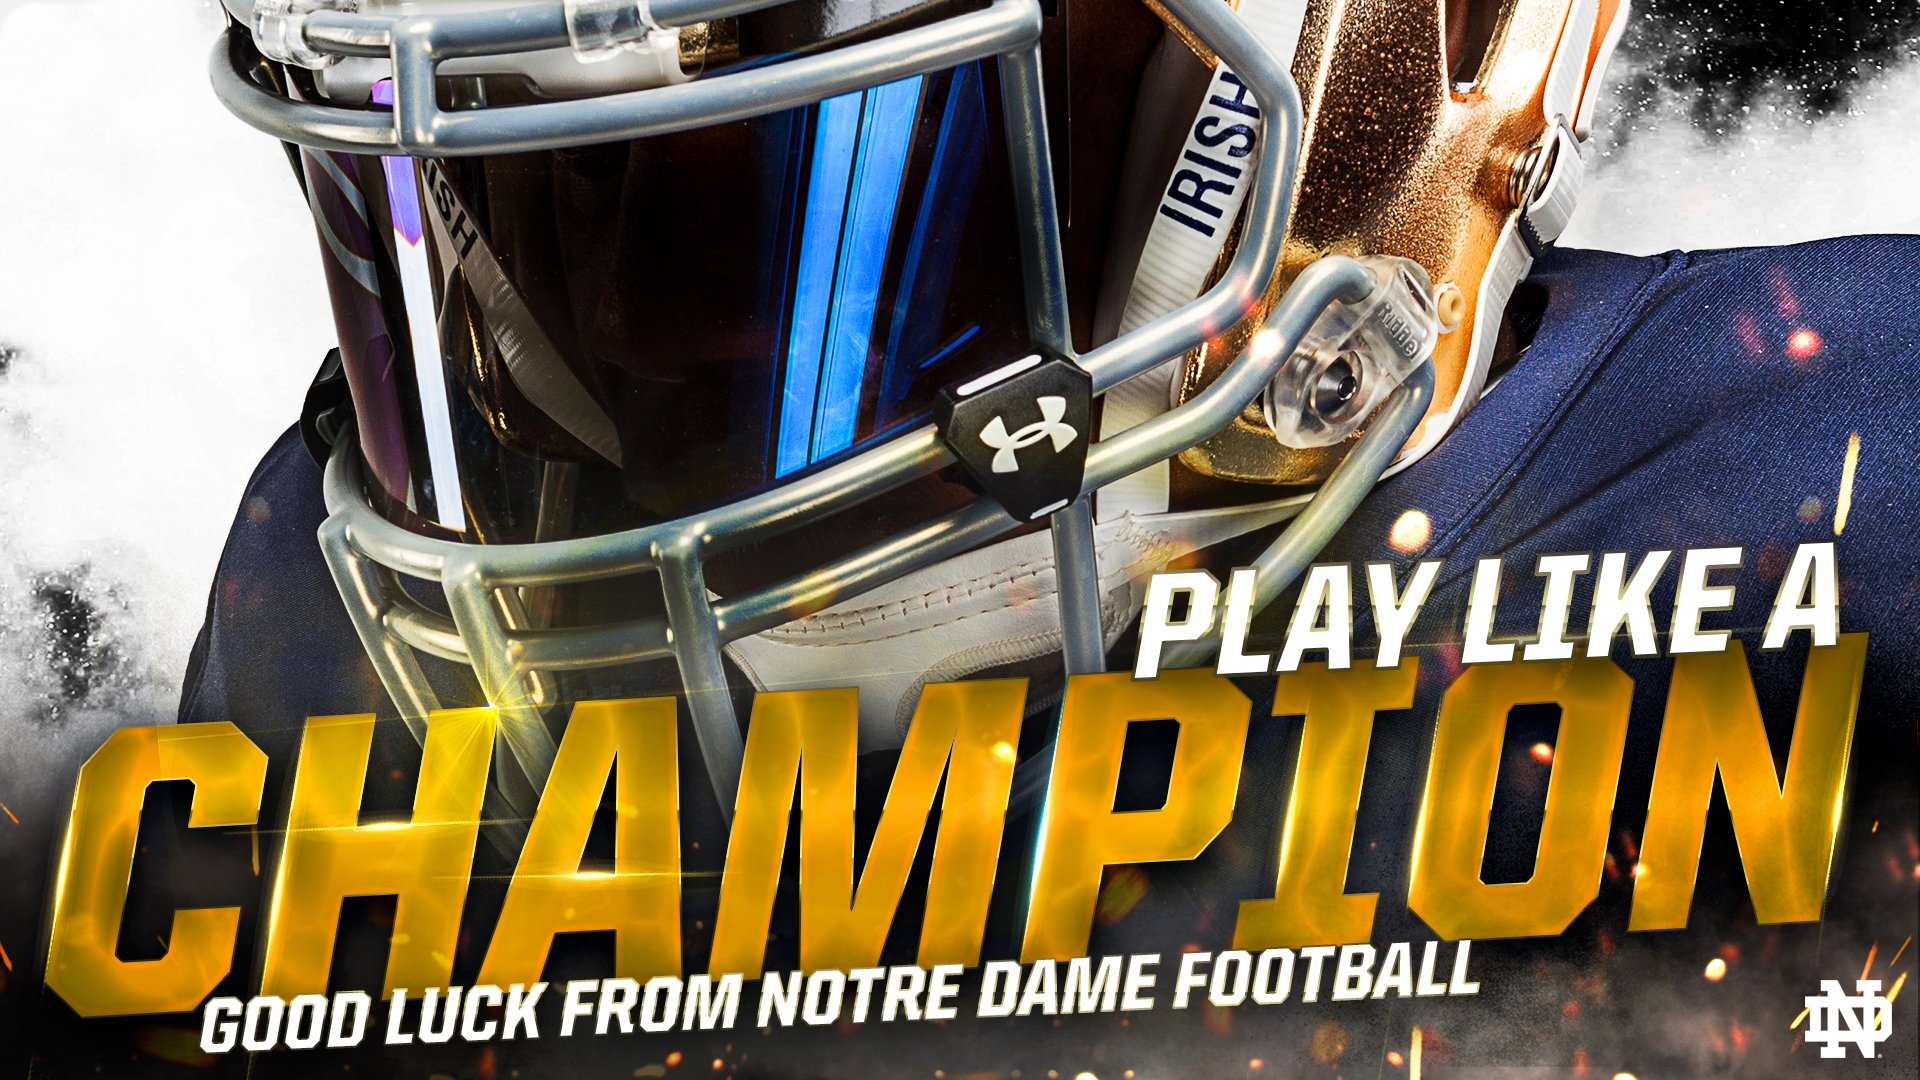 Notre Dame Football On Twitter Play Like A Champion Good